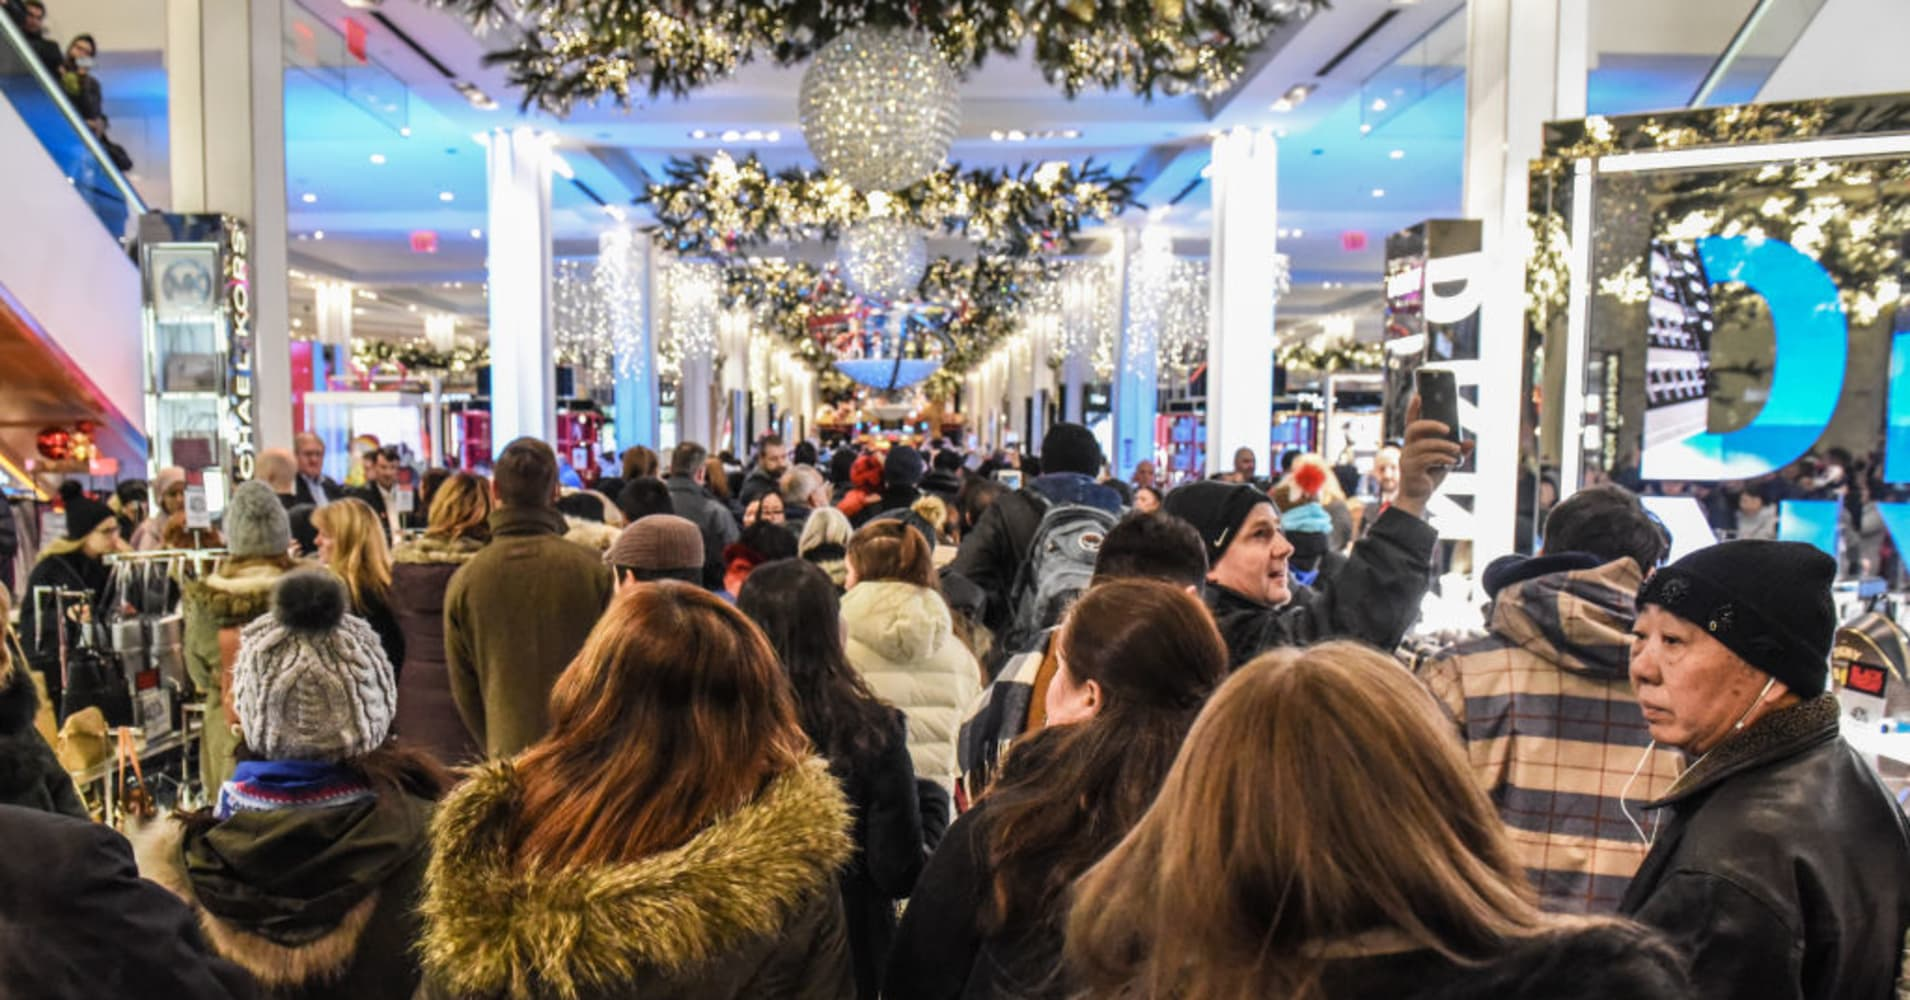 Shoppers enter Macy's department store on 'Black Friday' on November 23, 2017 in New York City.